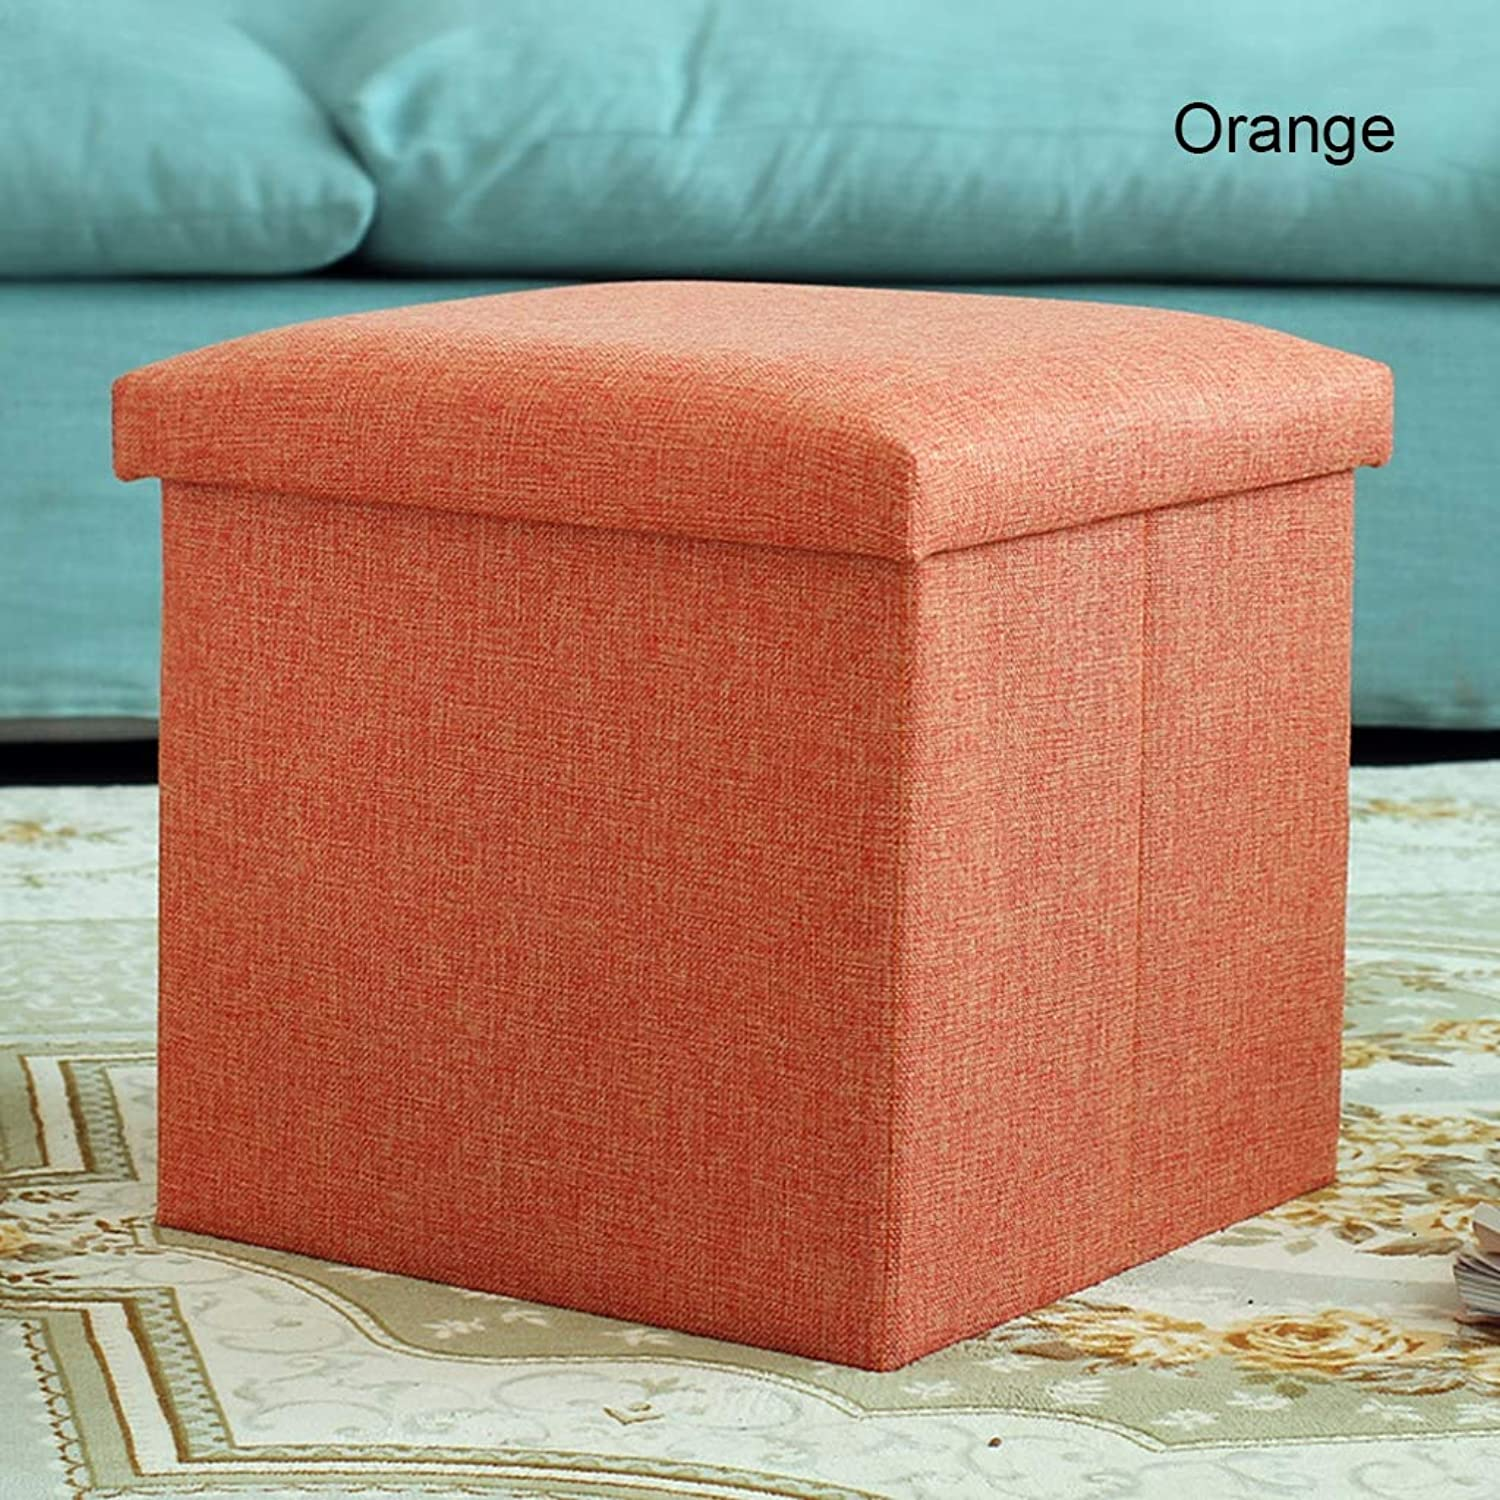 Storage Stool Multi-Function Folding Toy Storage Stool Home Storage Box Change shoes Bench,orange,Rectangular